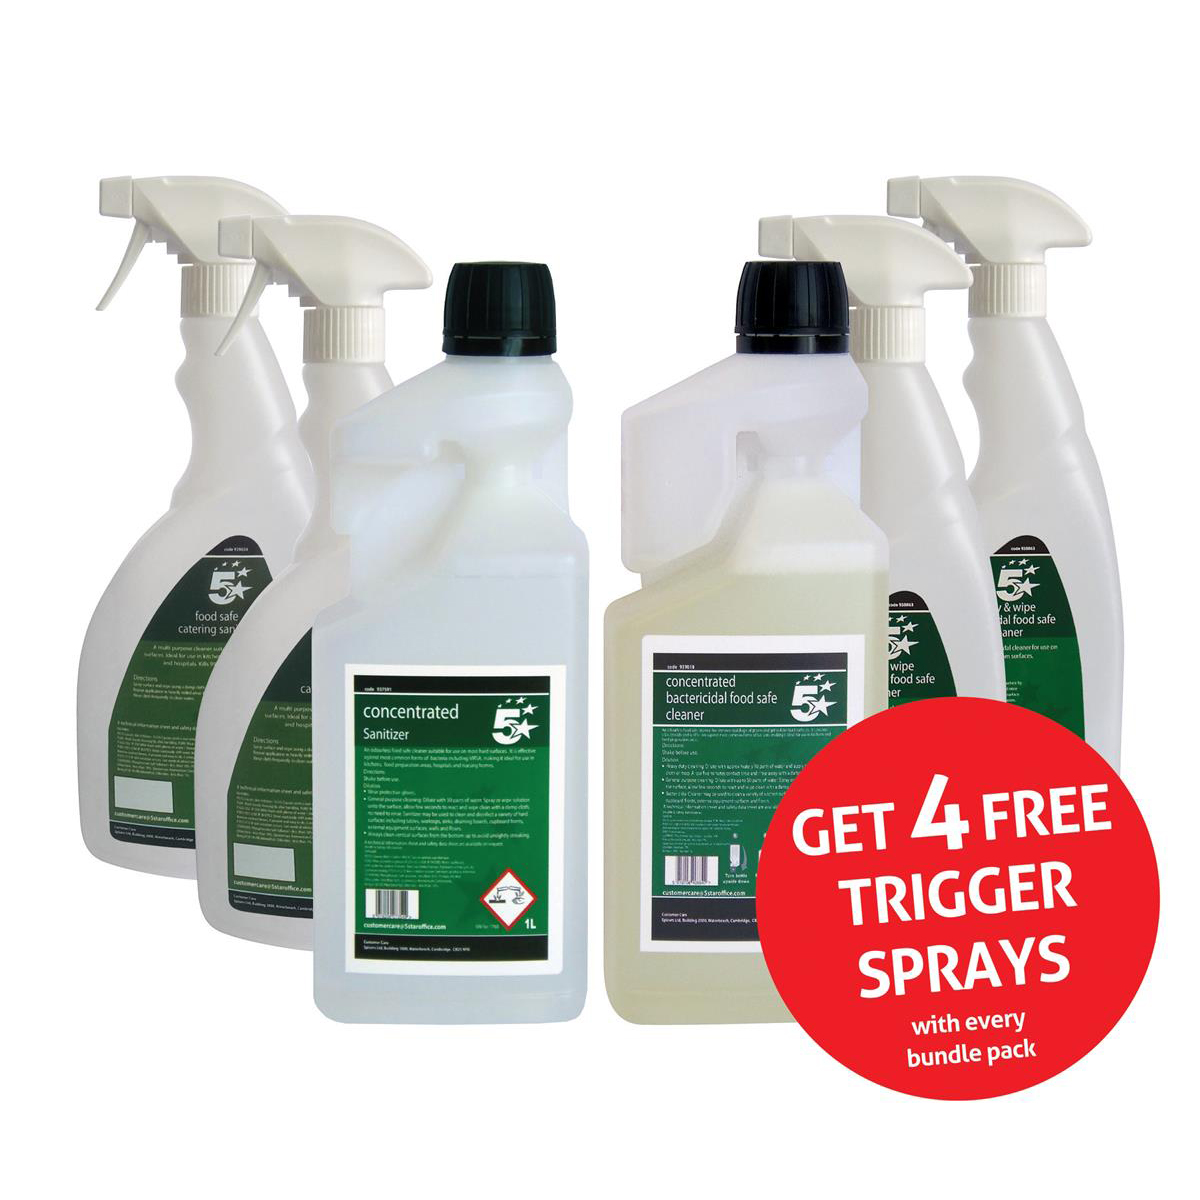 5 Star Facilities Food Safe Sanitiser & Bactericidal Cleaner 1 Litre [FREE 750ml Trigger Bottles]